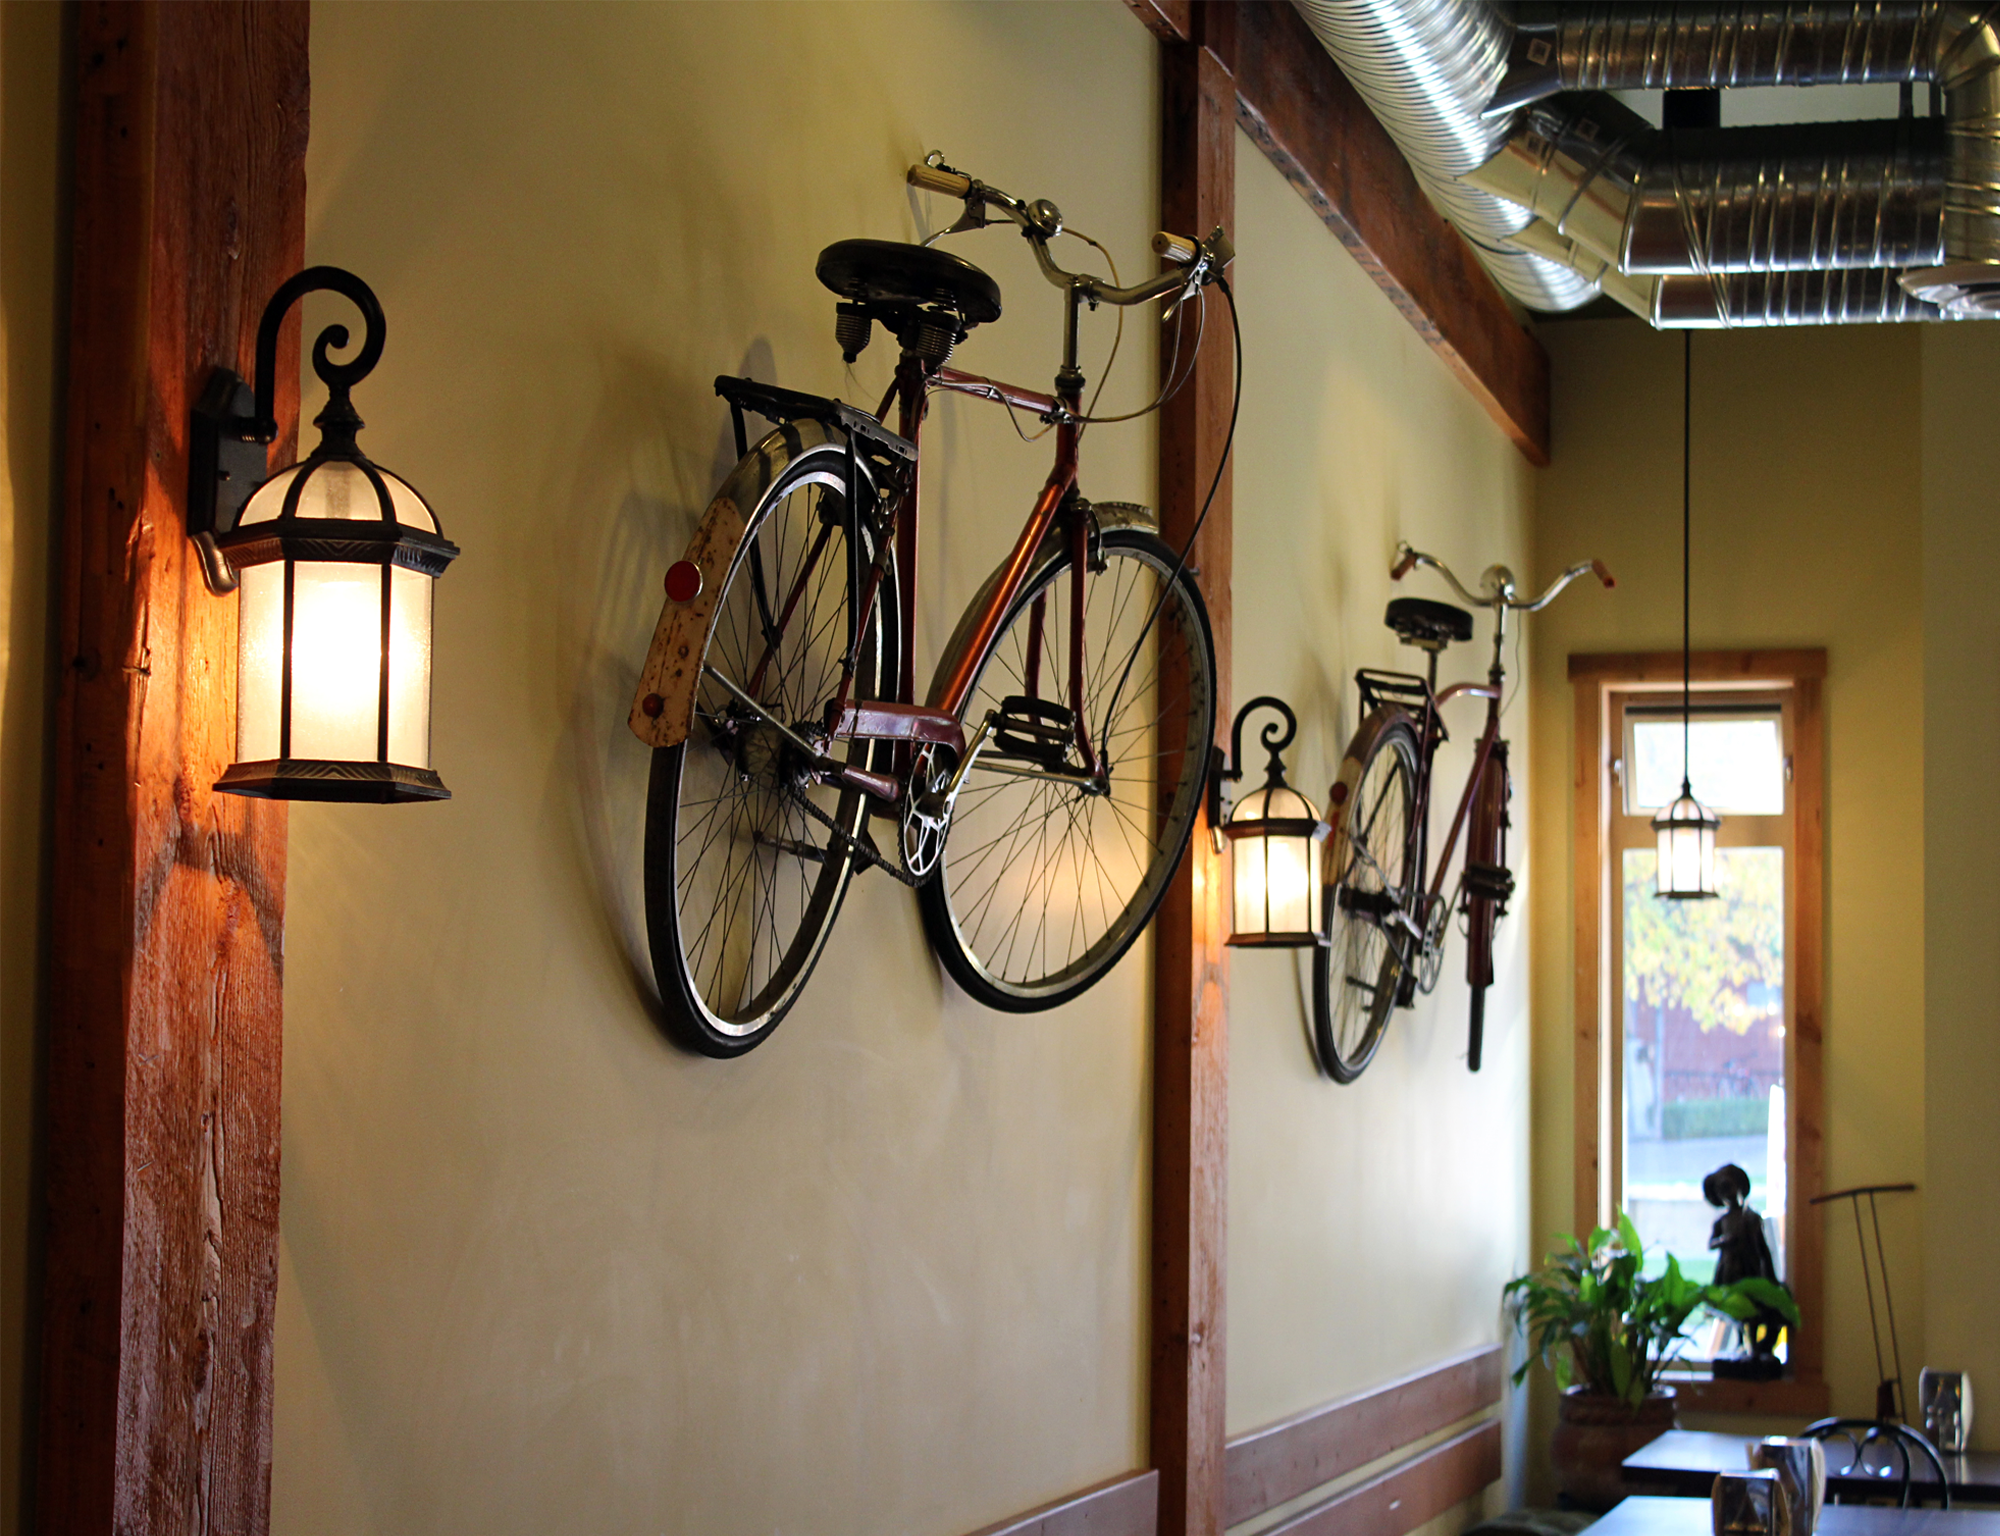 Bicycles on the wall in the inside of the restaurant